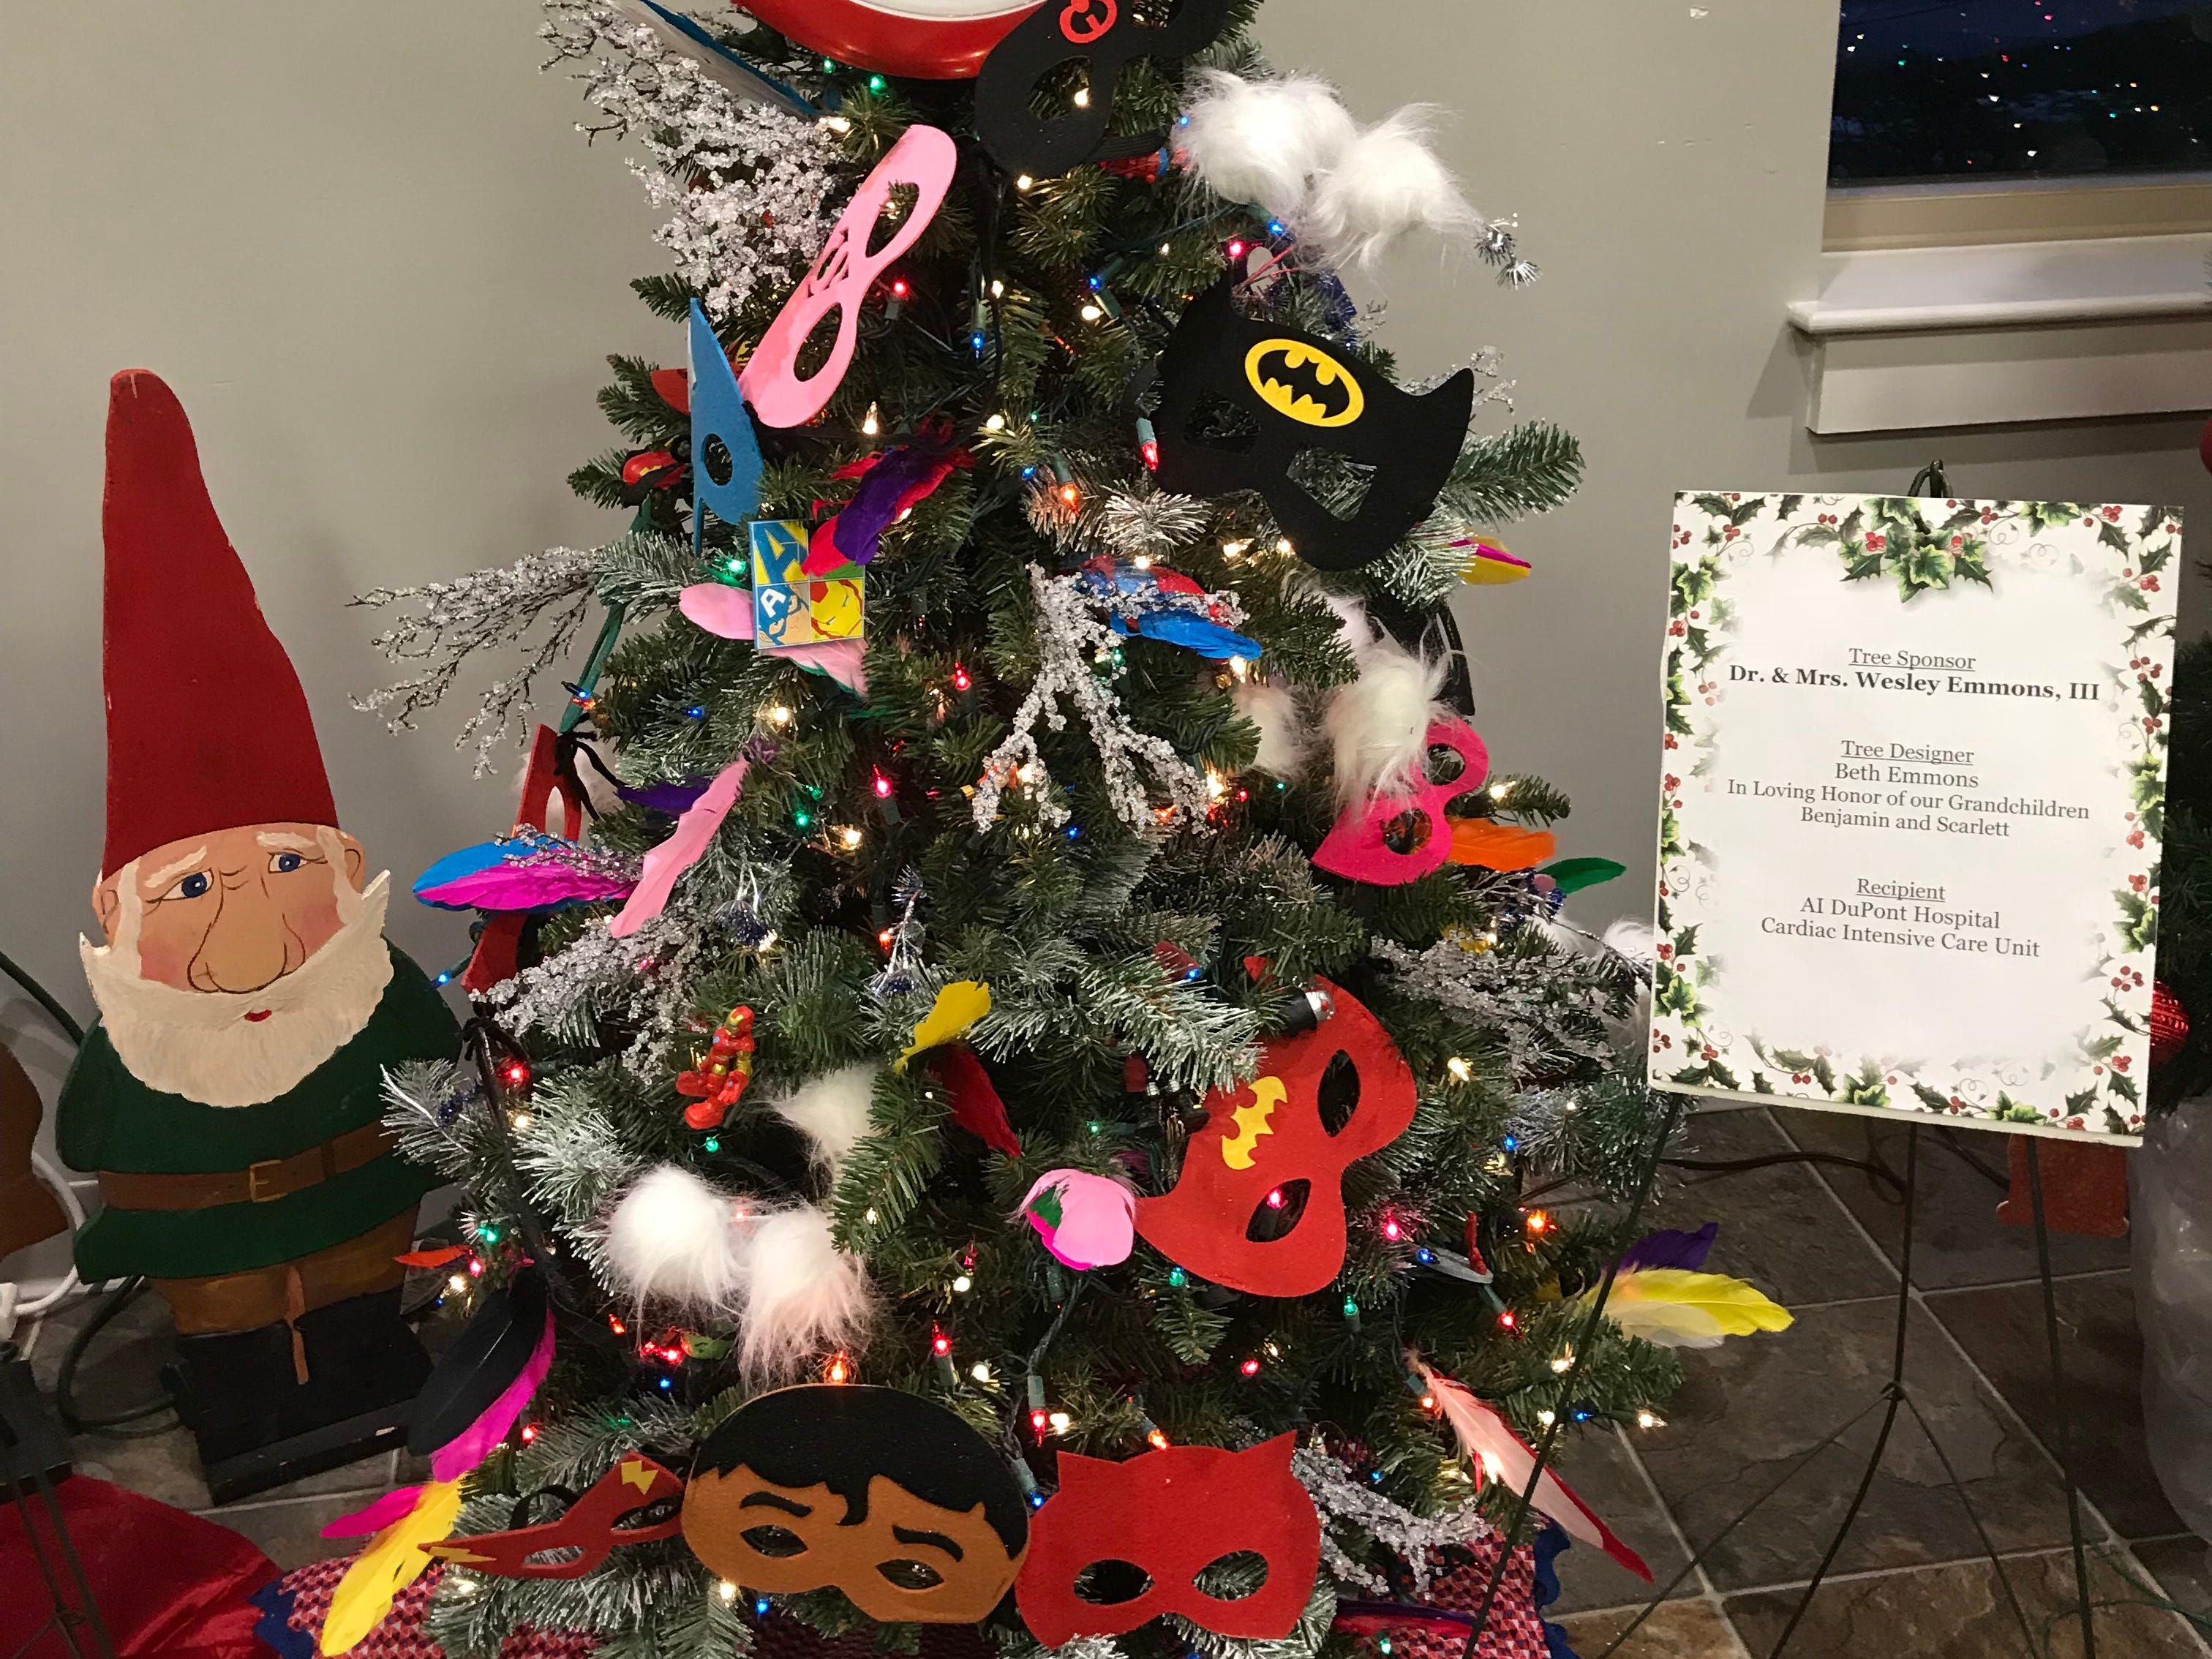 Scenes from The Festival of Trees at The Summit in Hockessin on Nov. 16, 2018